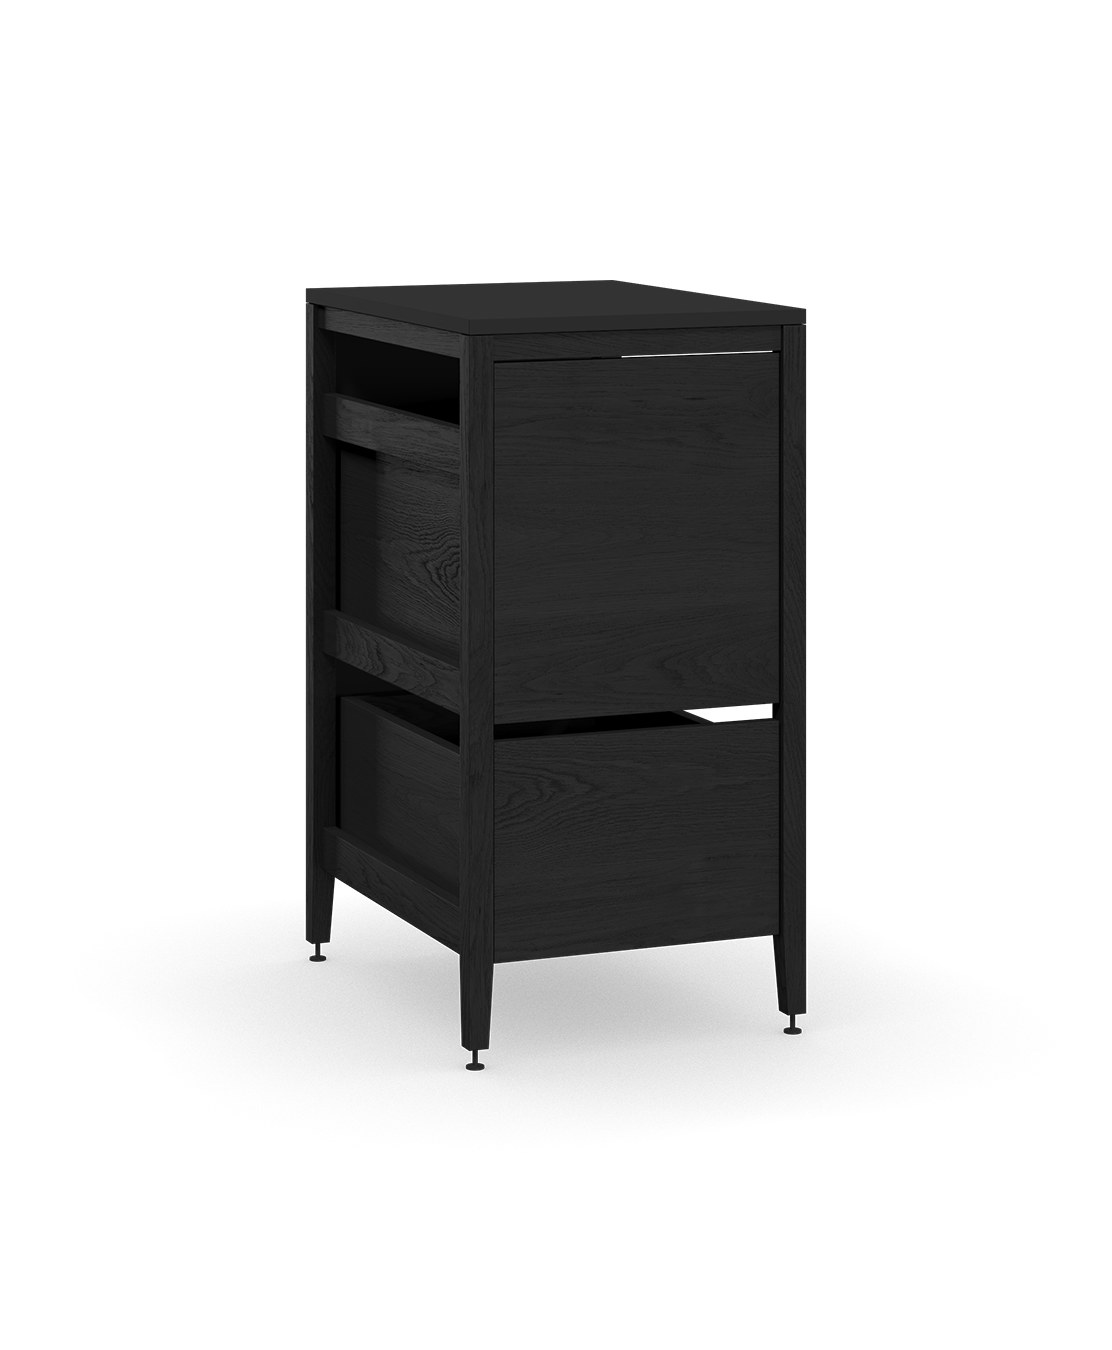 coquo radix midnight black stained oak solid wood modular 1 drawer 2 bins trash base kitchen cabinet 18 inch C1-CTR-18TB-2002-BK